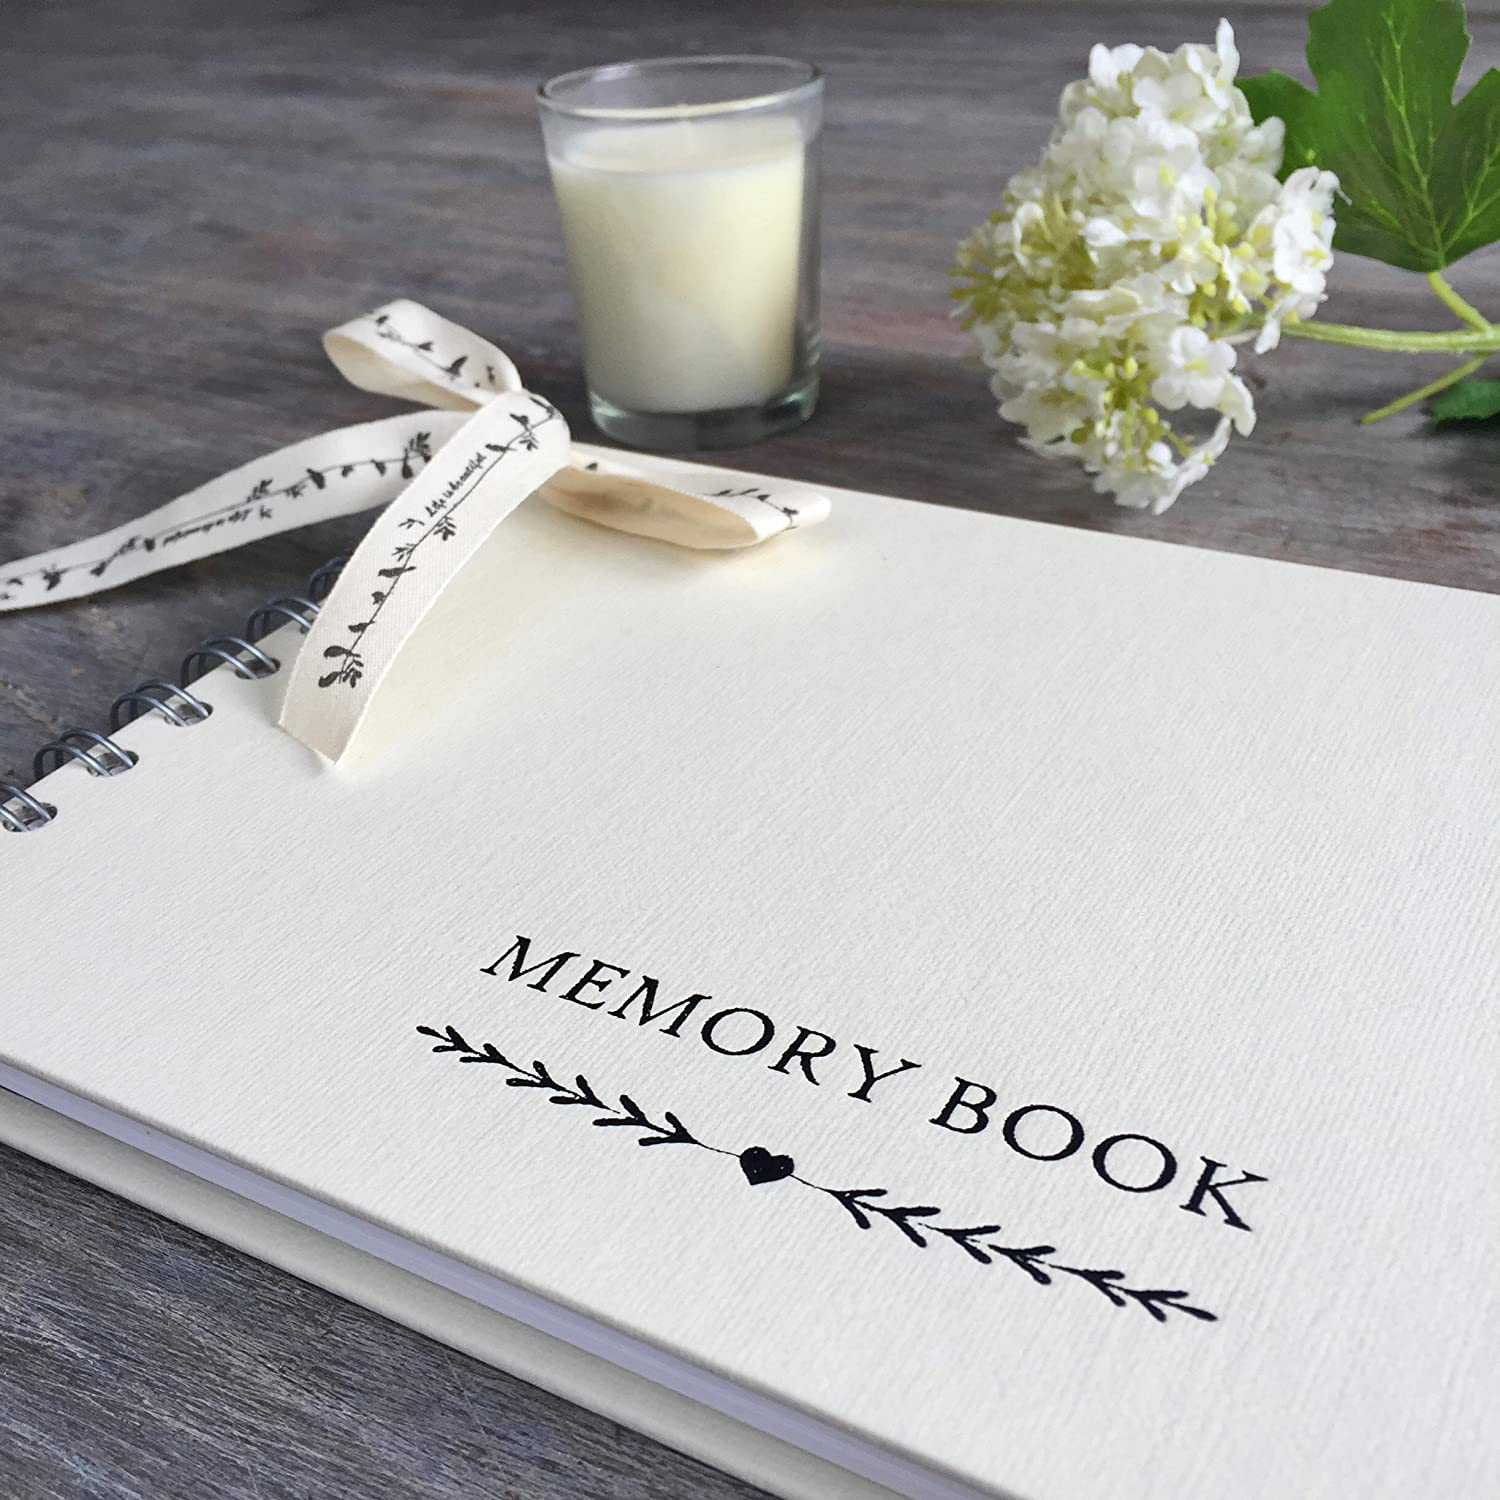 Angel & Dove Luxury A5 Memory Book for Funeral, Remembrance, Condolence, Celebration of Life